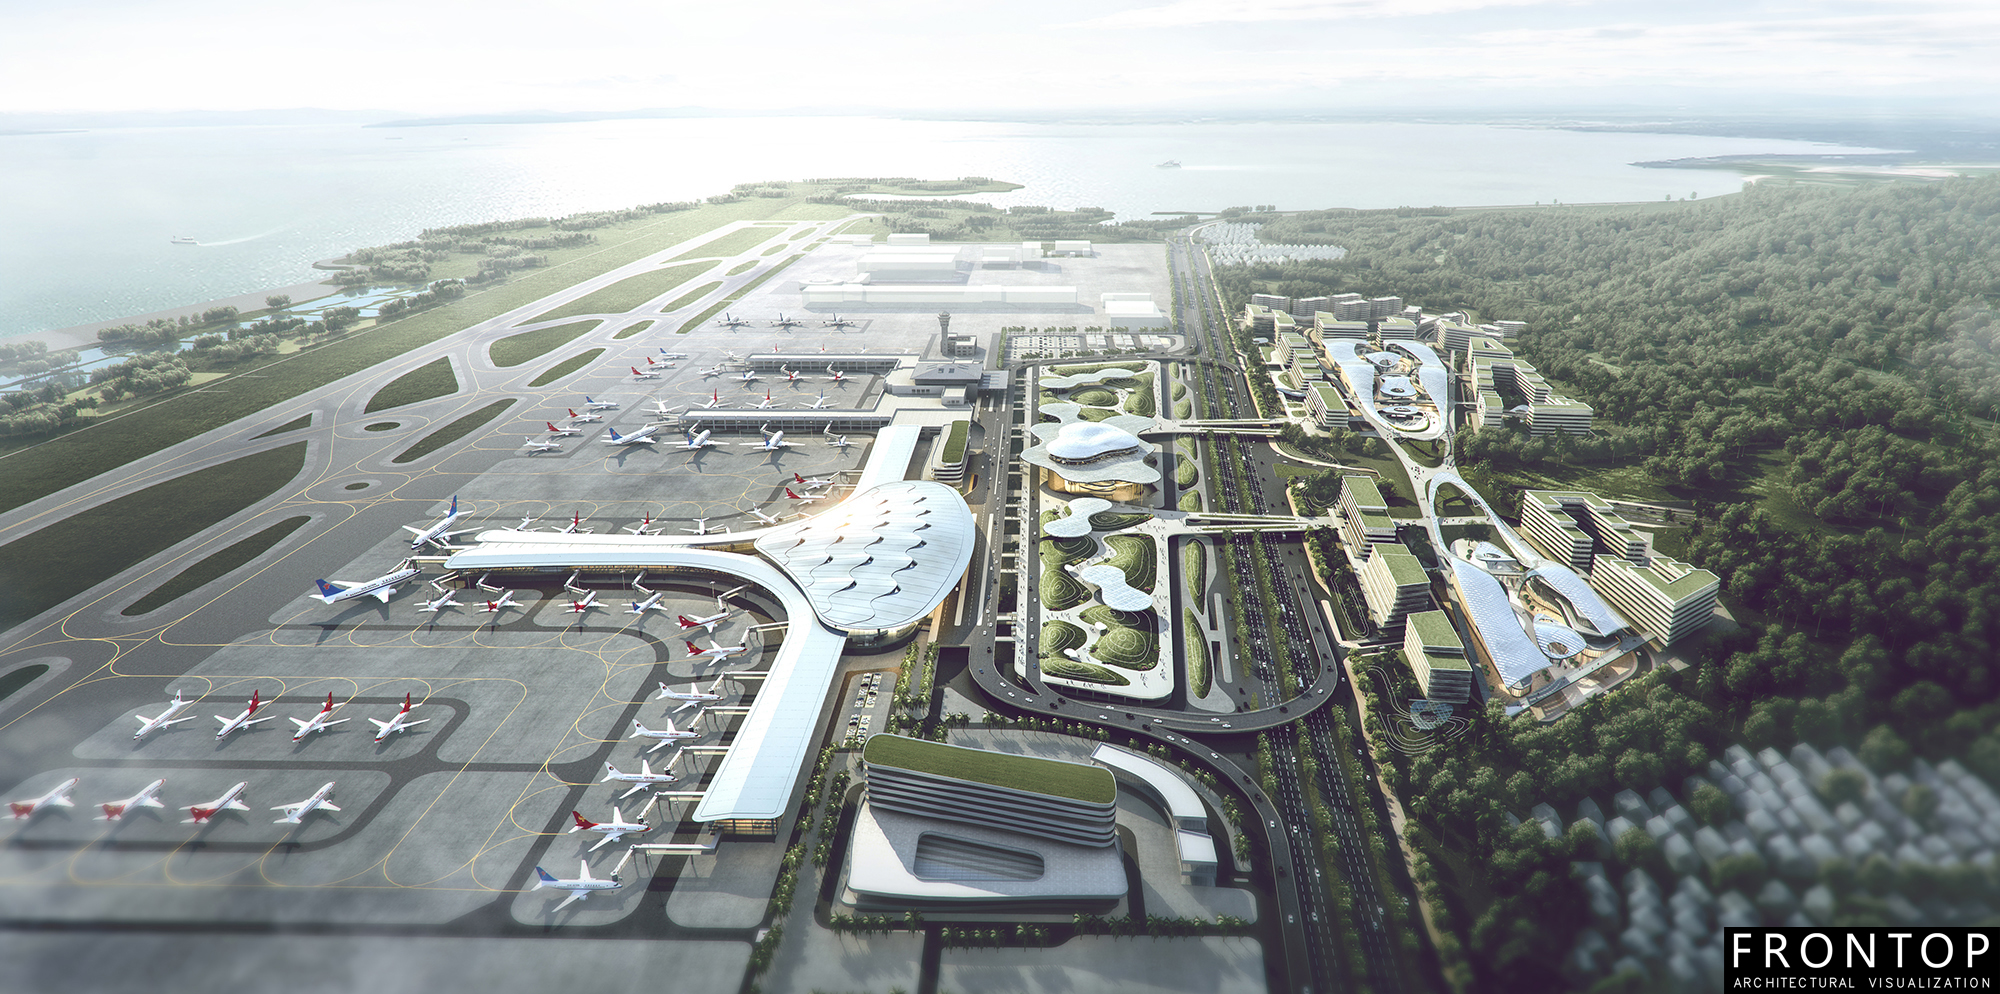 Fixed Competitive Price 3d Architecture Perspective - Zhuhai Airport Bidding – Frontop